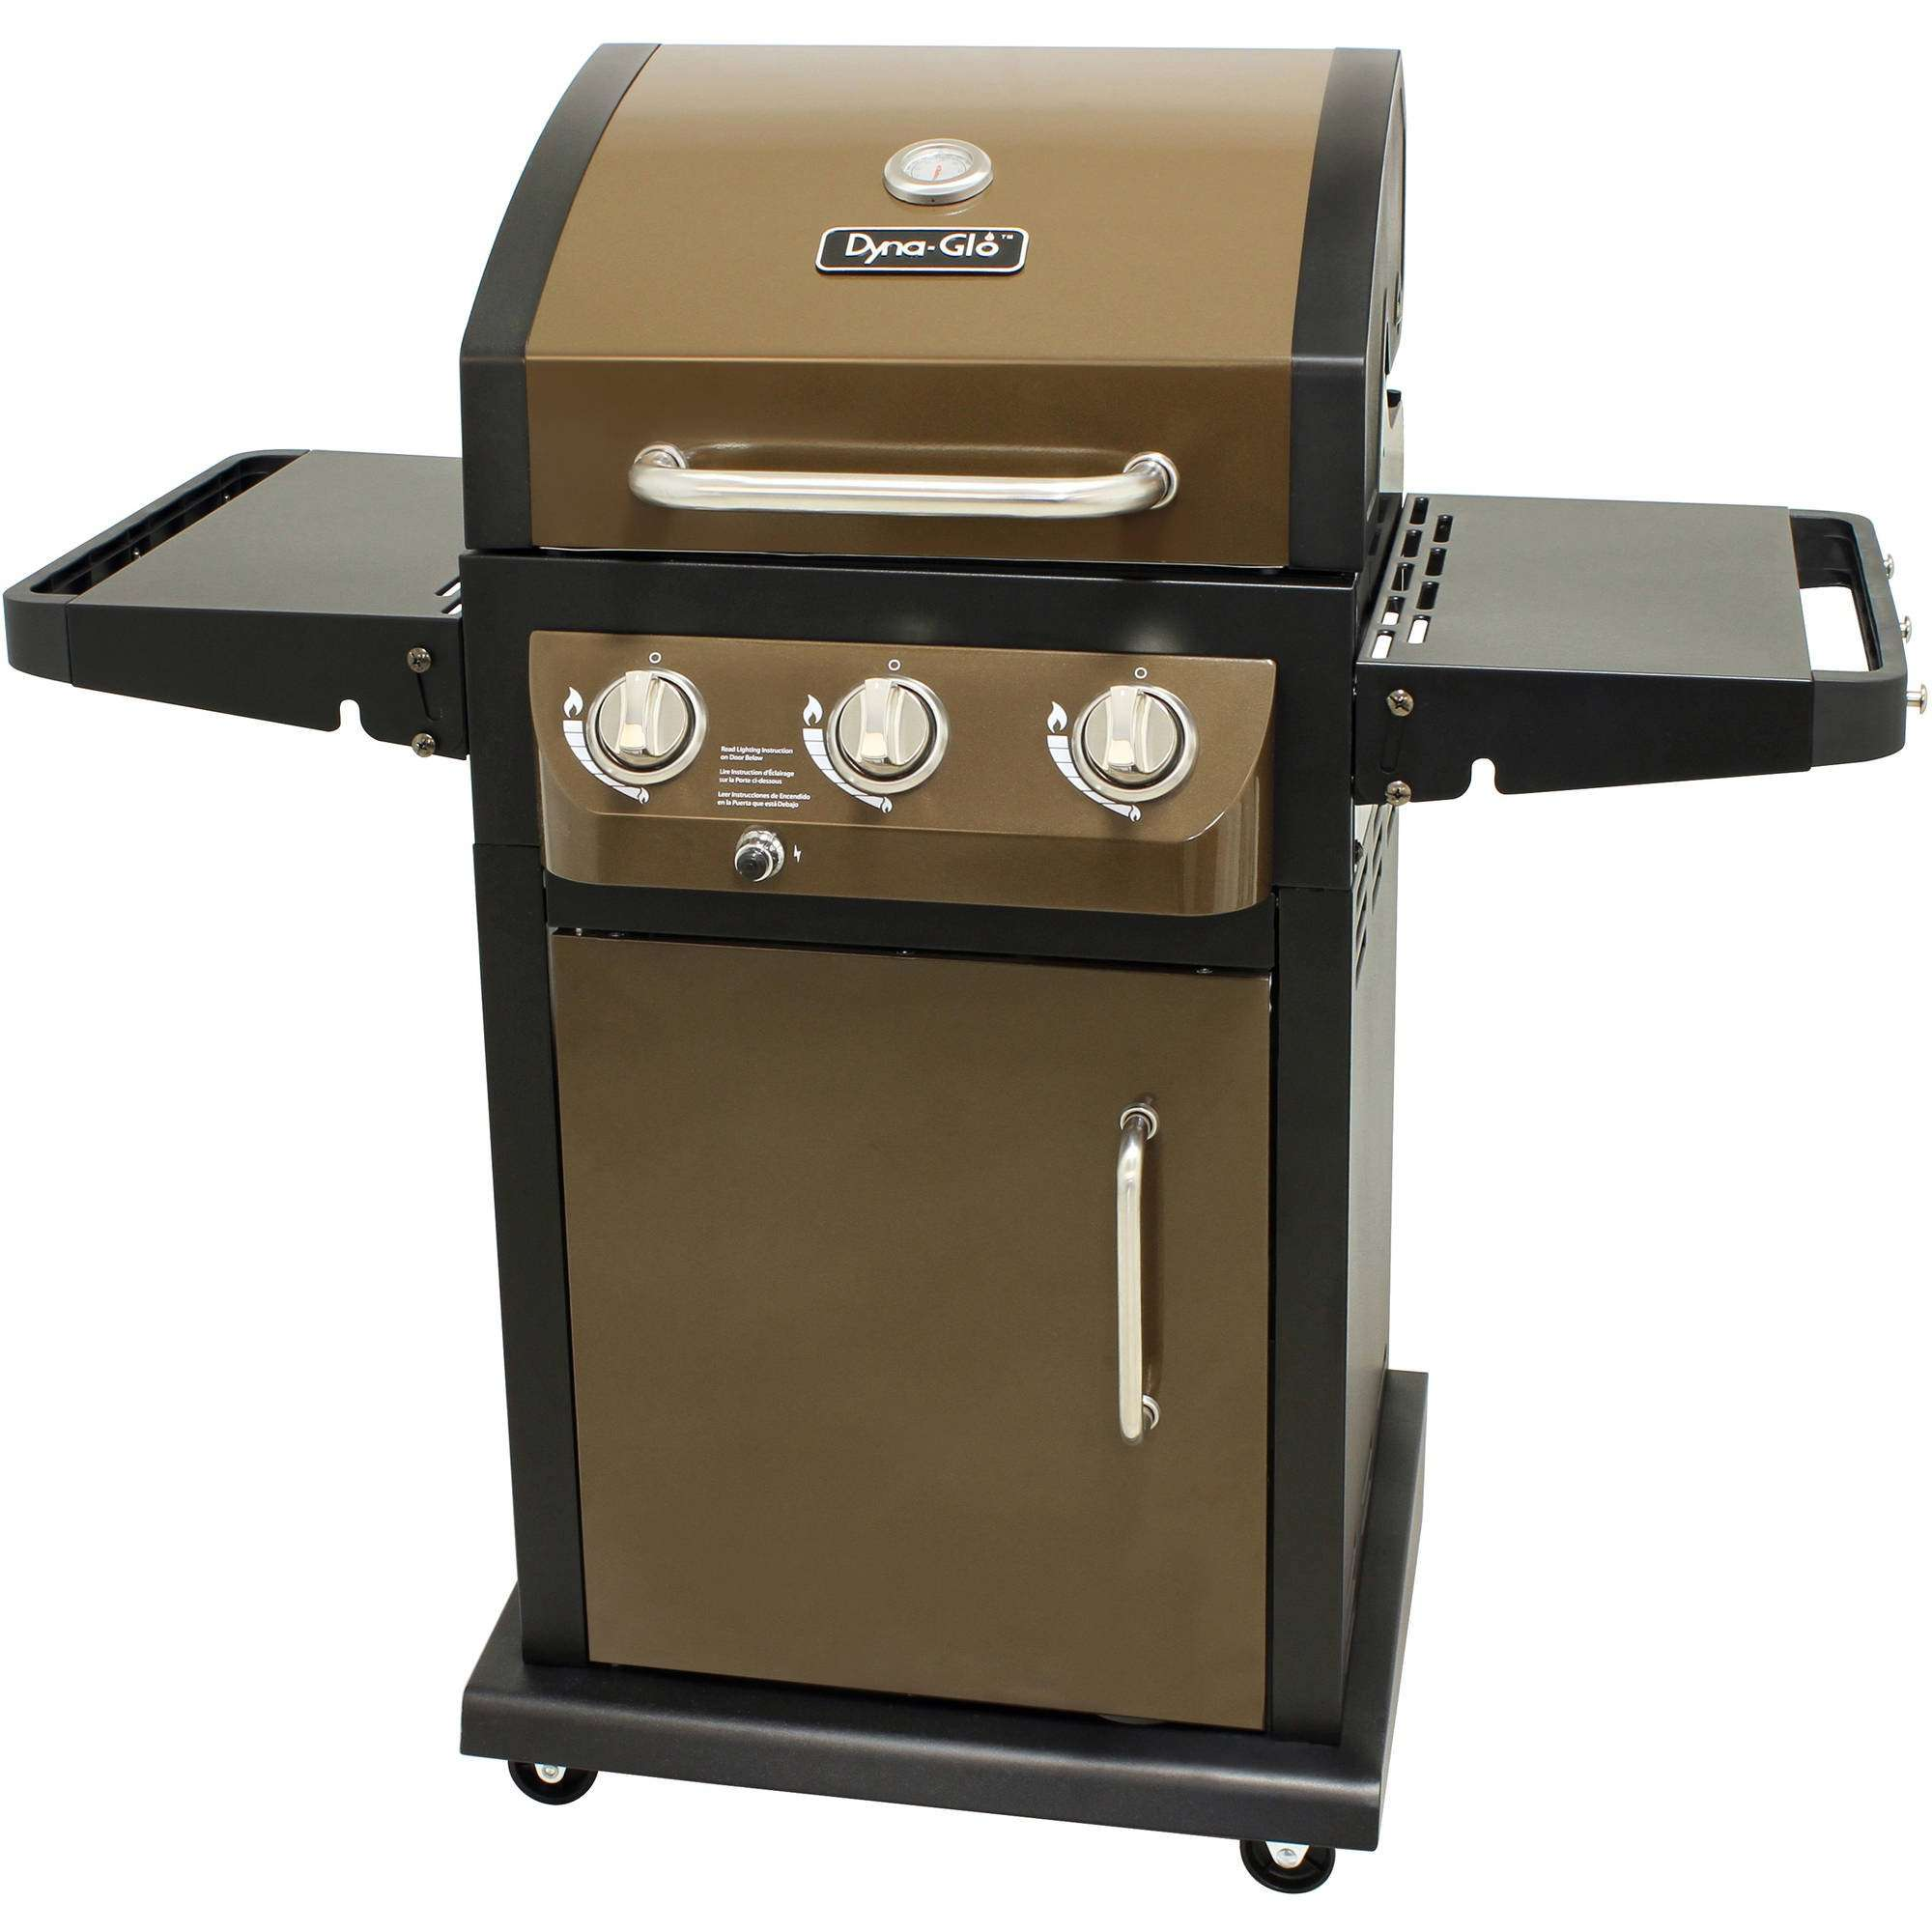 Dyna-Glo 3-Burner Smart Space Gas Grill